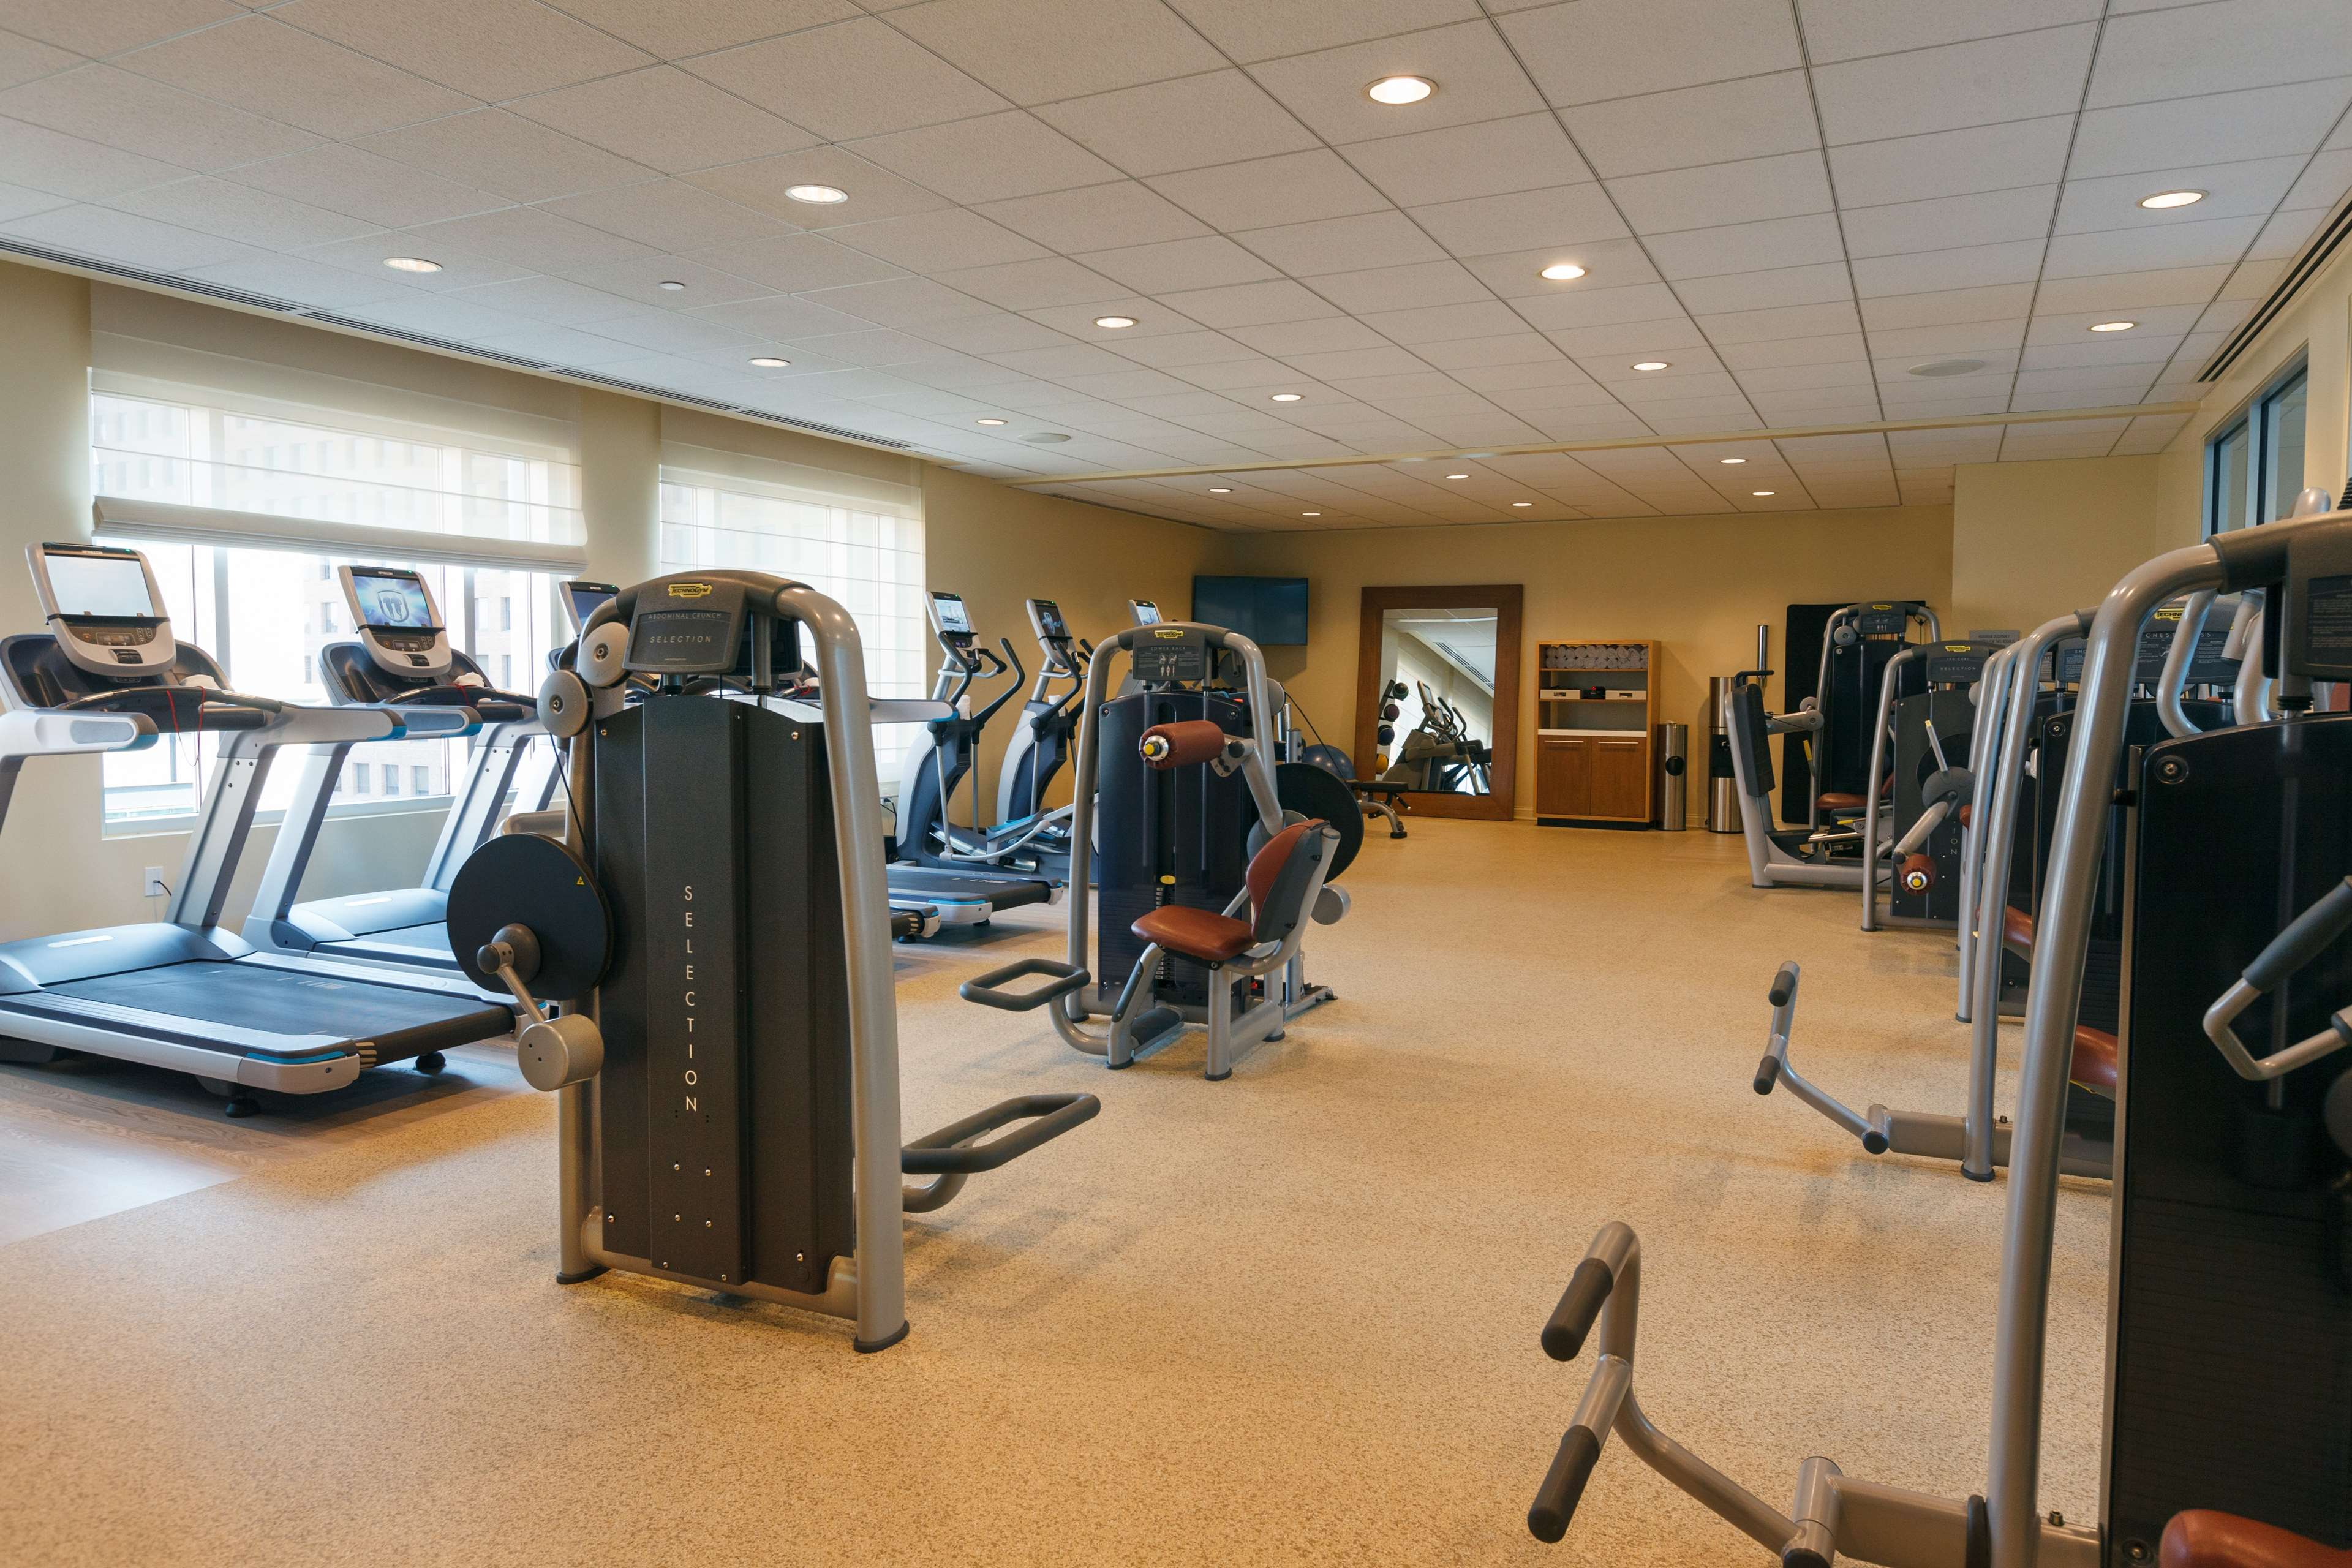 DoubleTree by Hilton Hotel Bristol, Connecticut image 6